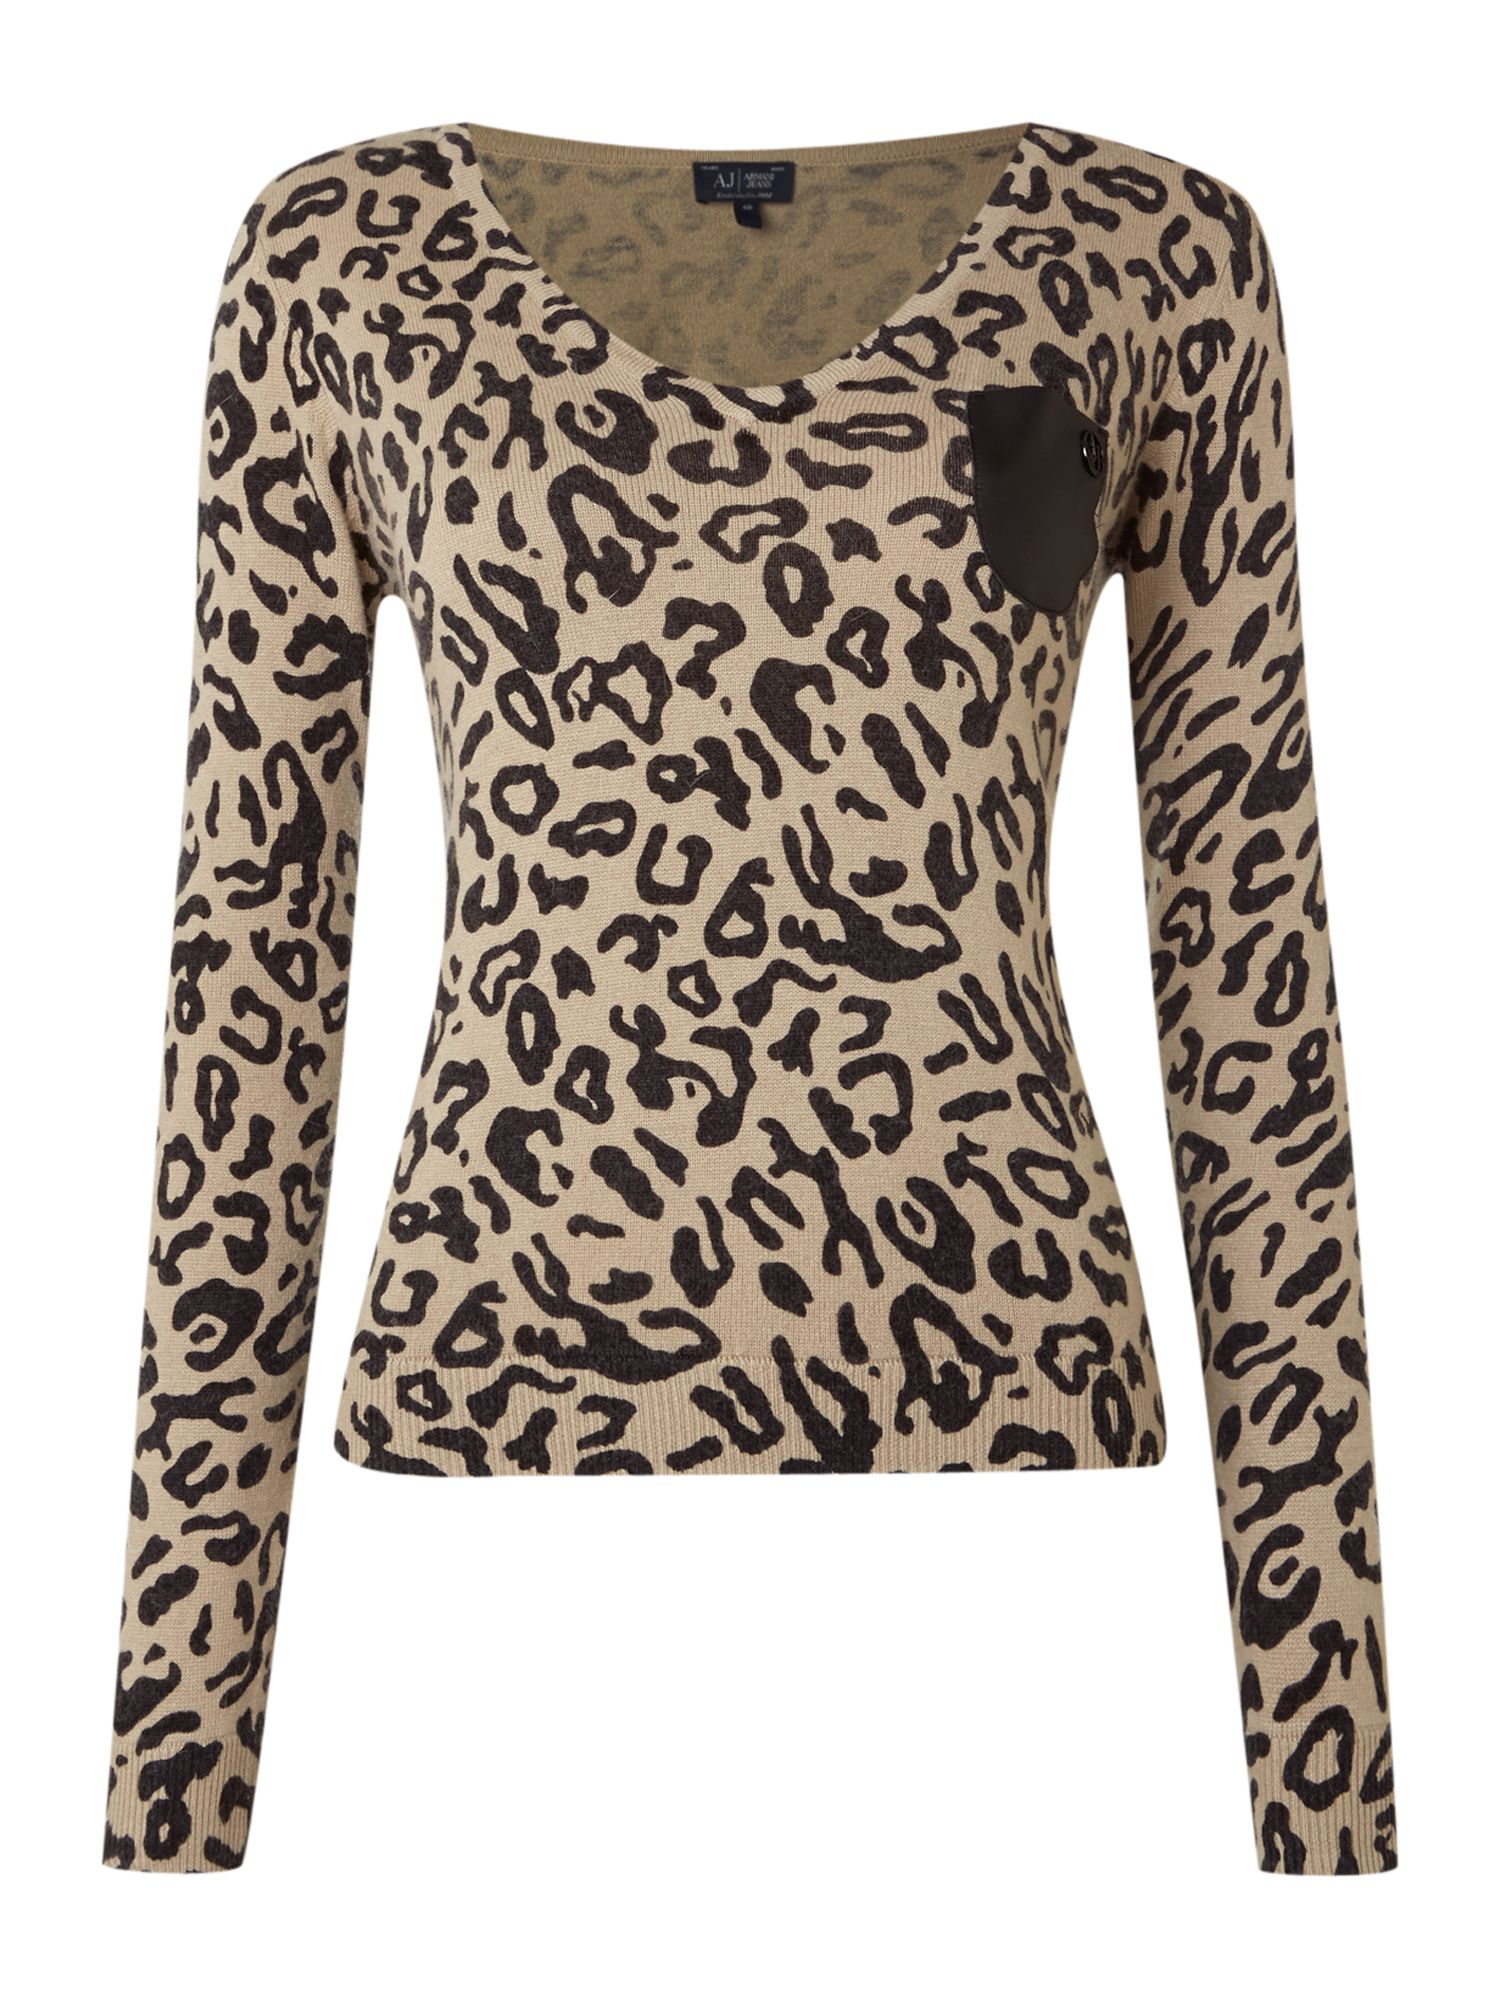 Long sleeve V neck leopard top with PU pocket